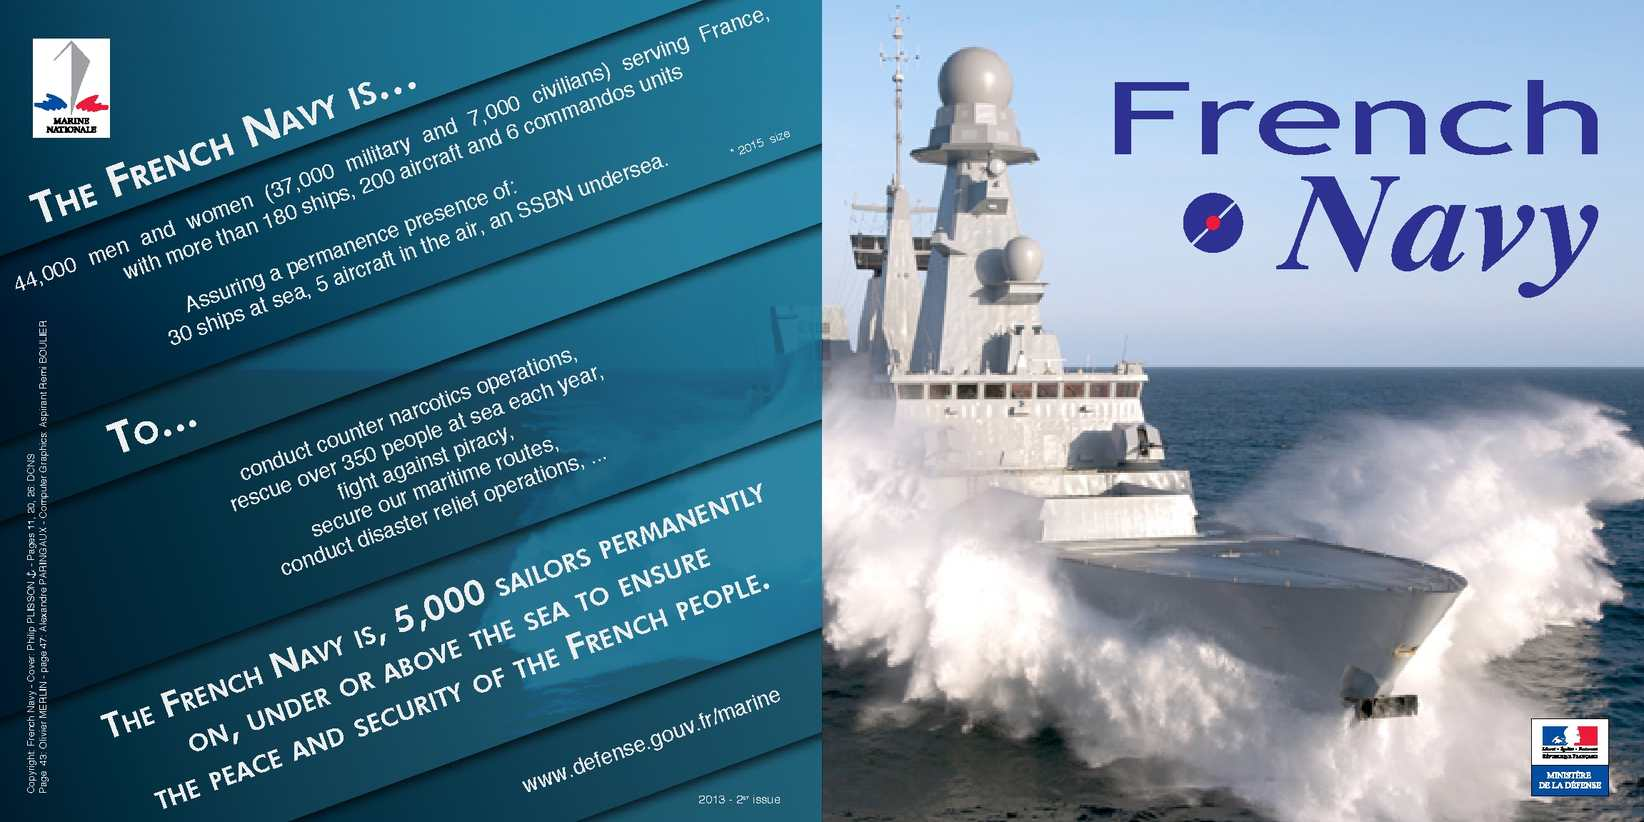 French Navy - Guide book